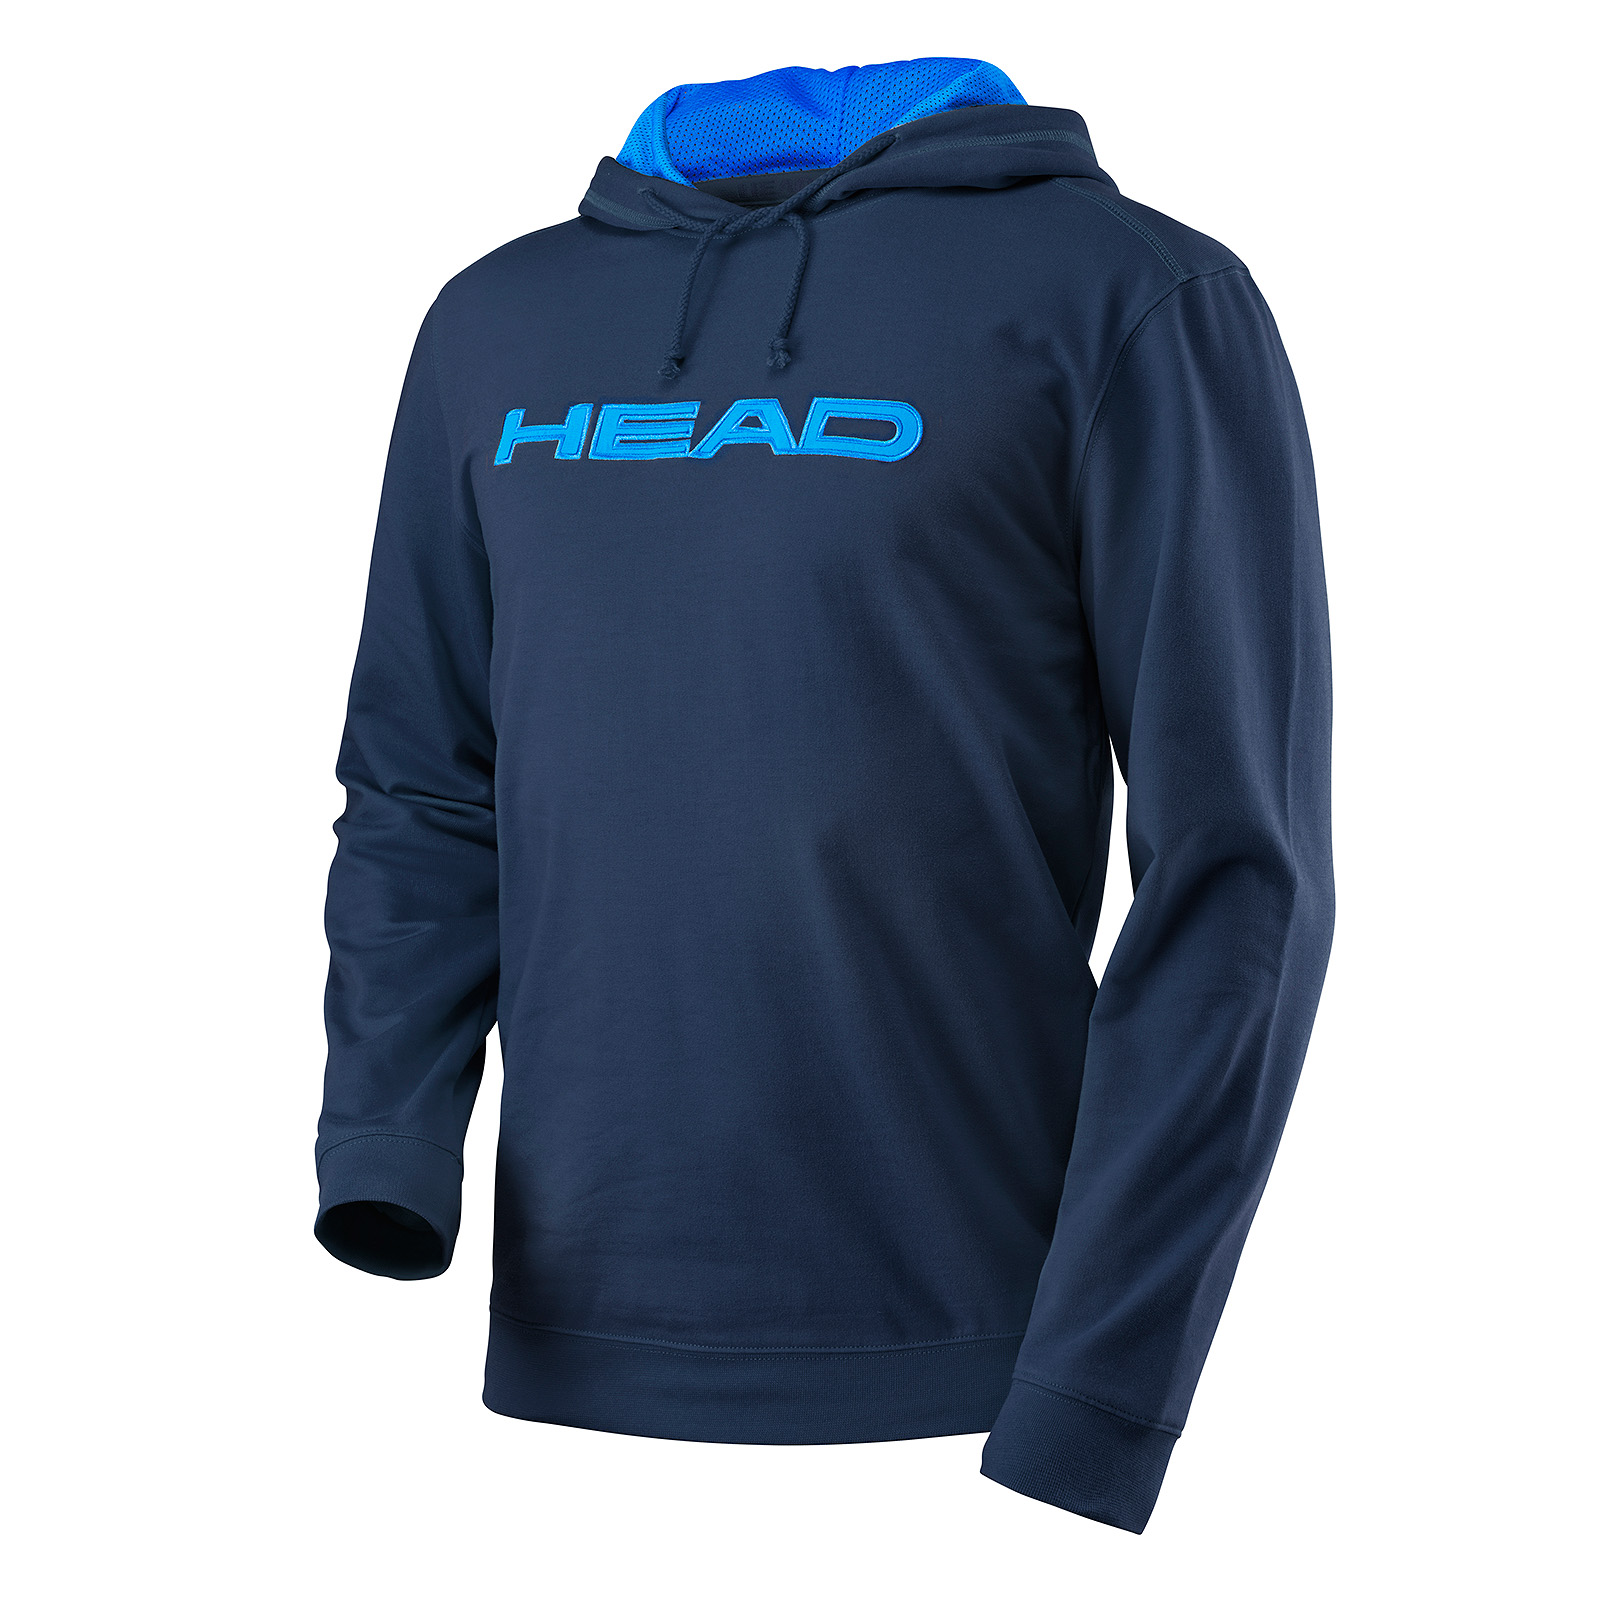 HEAD Hoody - Transition M Byron Navy/Blue S